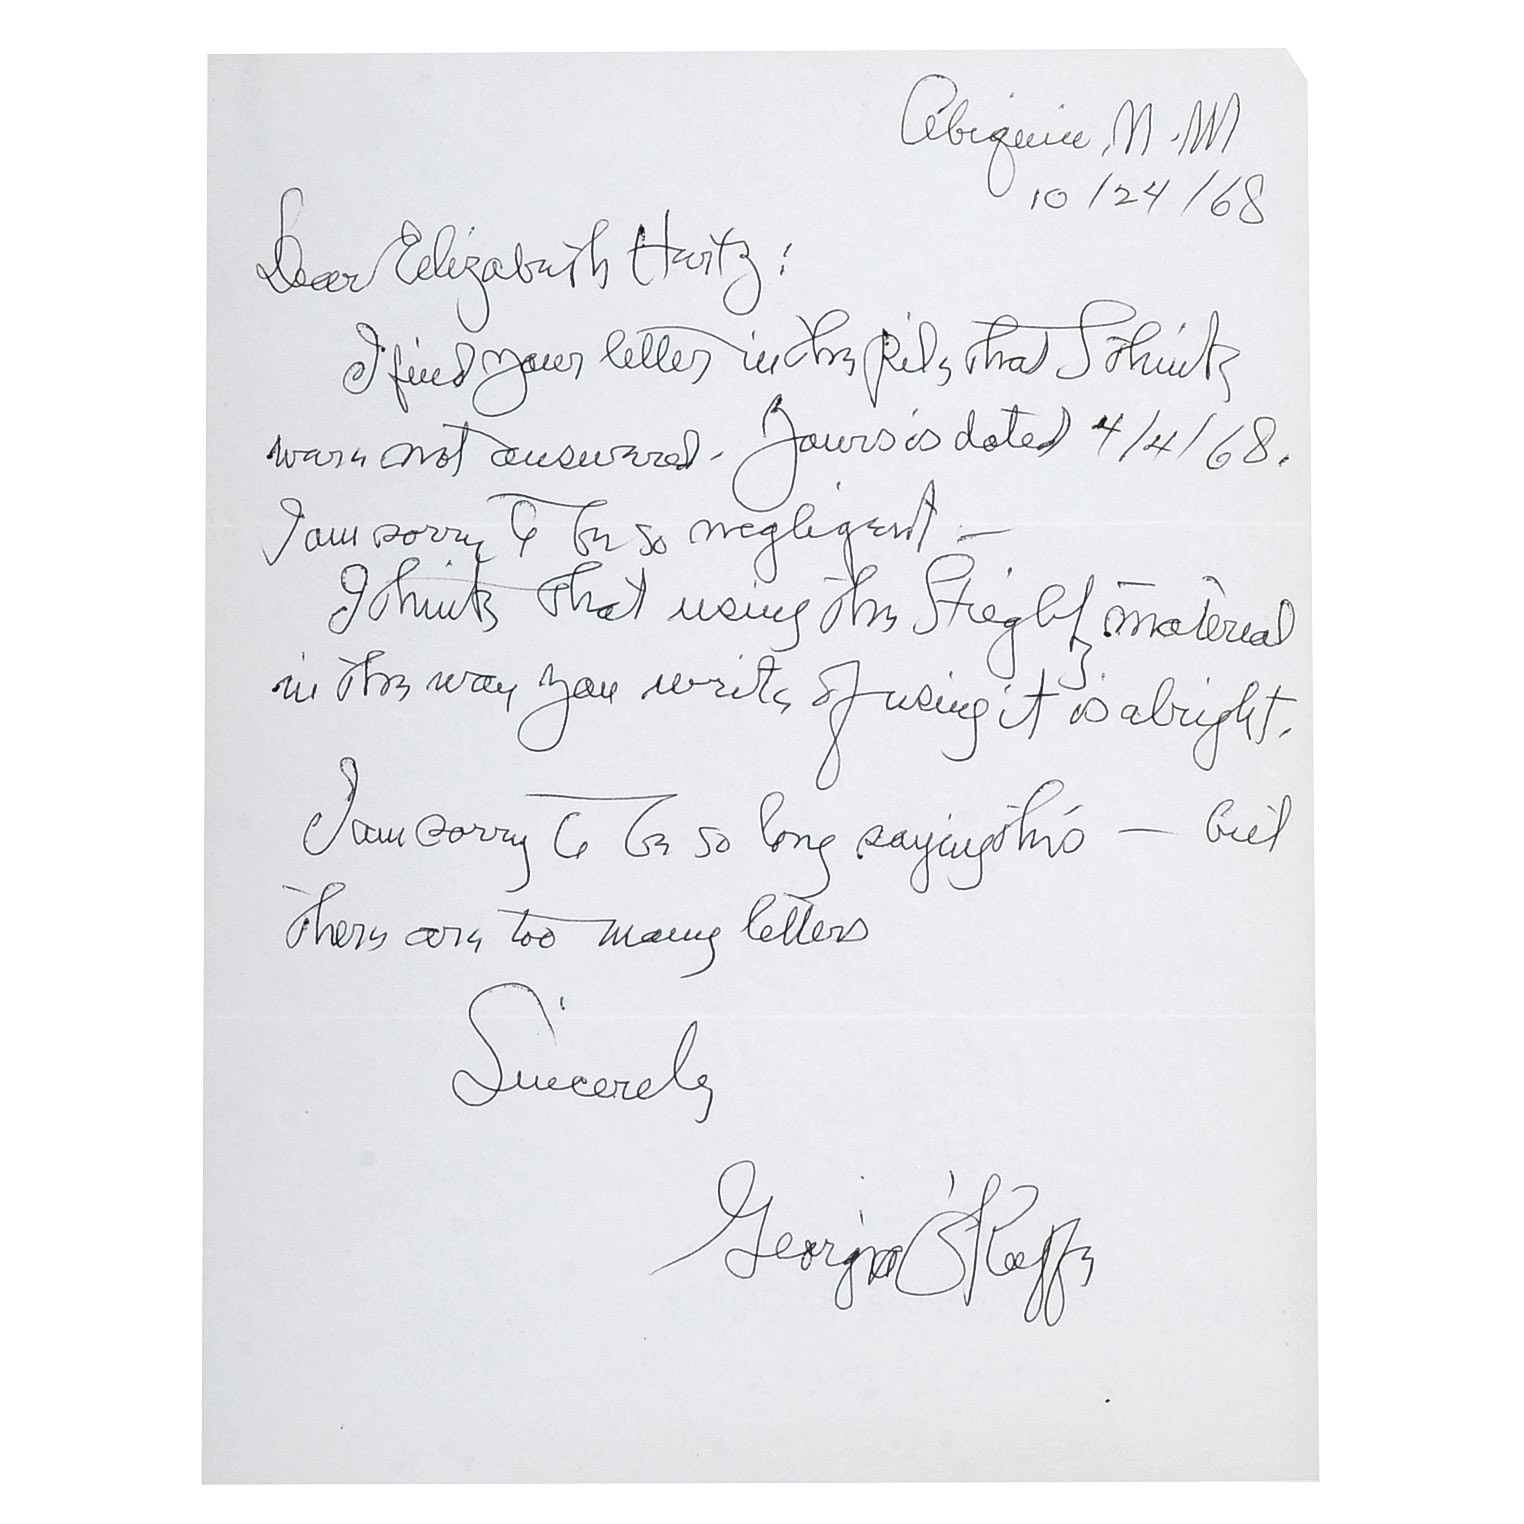 Signed Original 1968 Letter from Georgia O'Keeffe